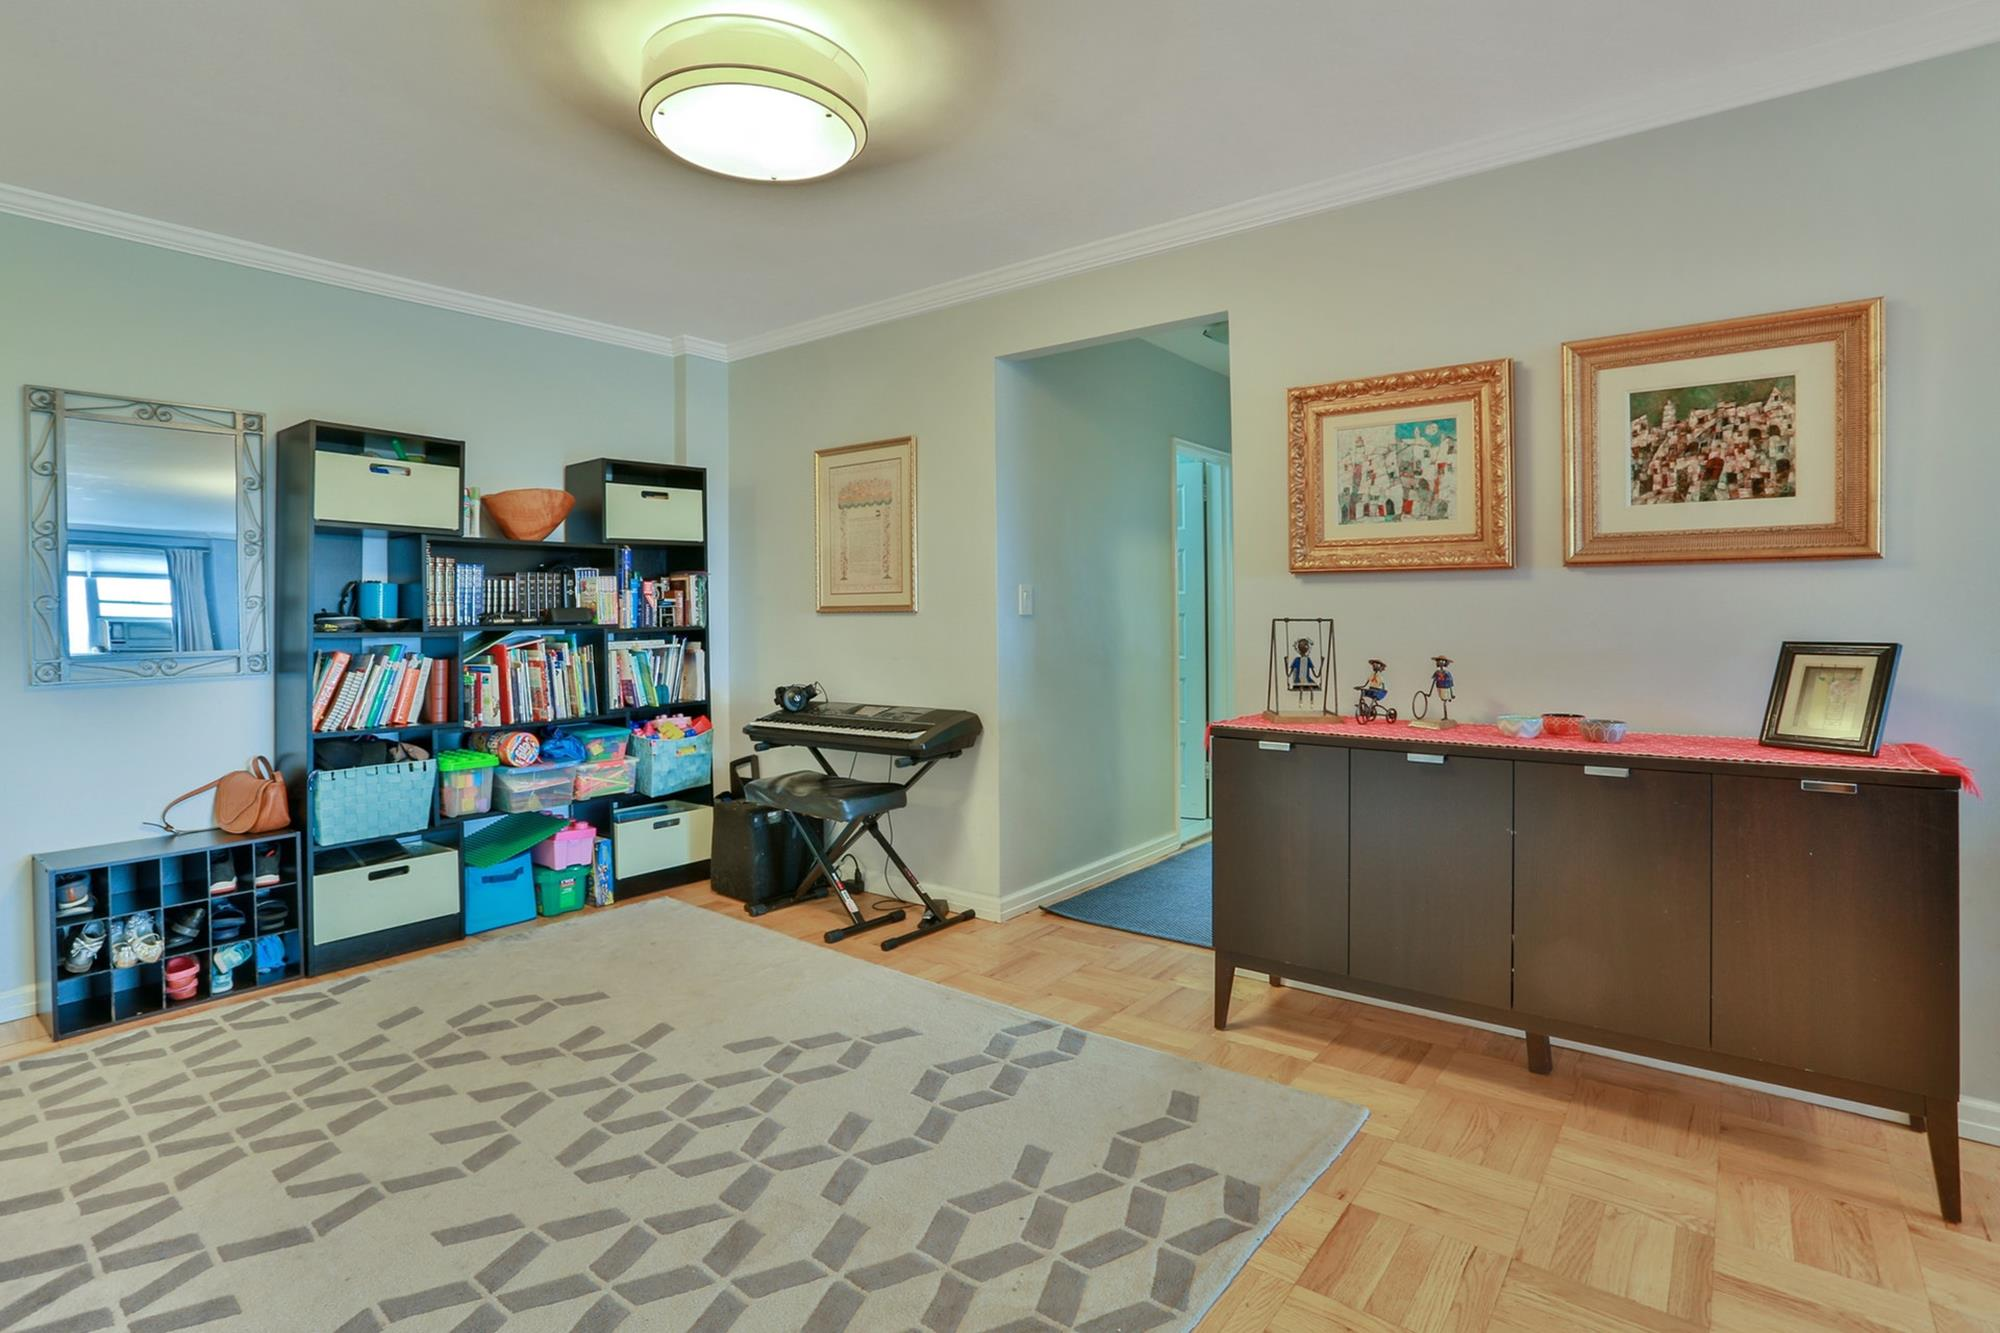 Spacious & Renovated 3-Bd. Co-op w/ Spectacular Oversized Kitchen,  Sunrise Balcony & 24-hr. Doormen at Parkway House